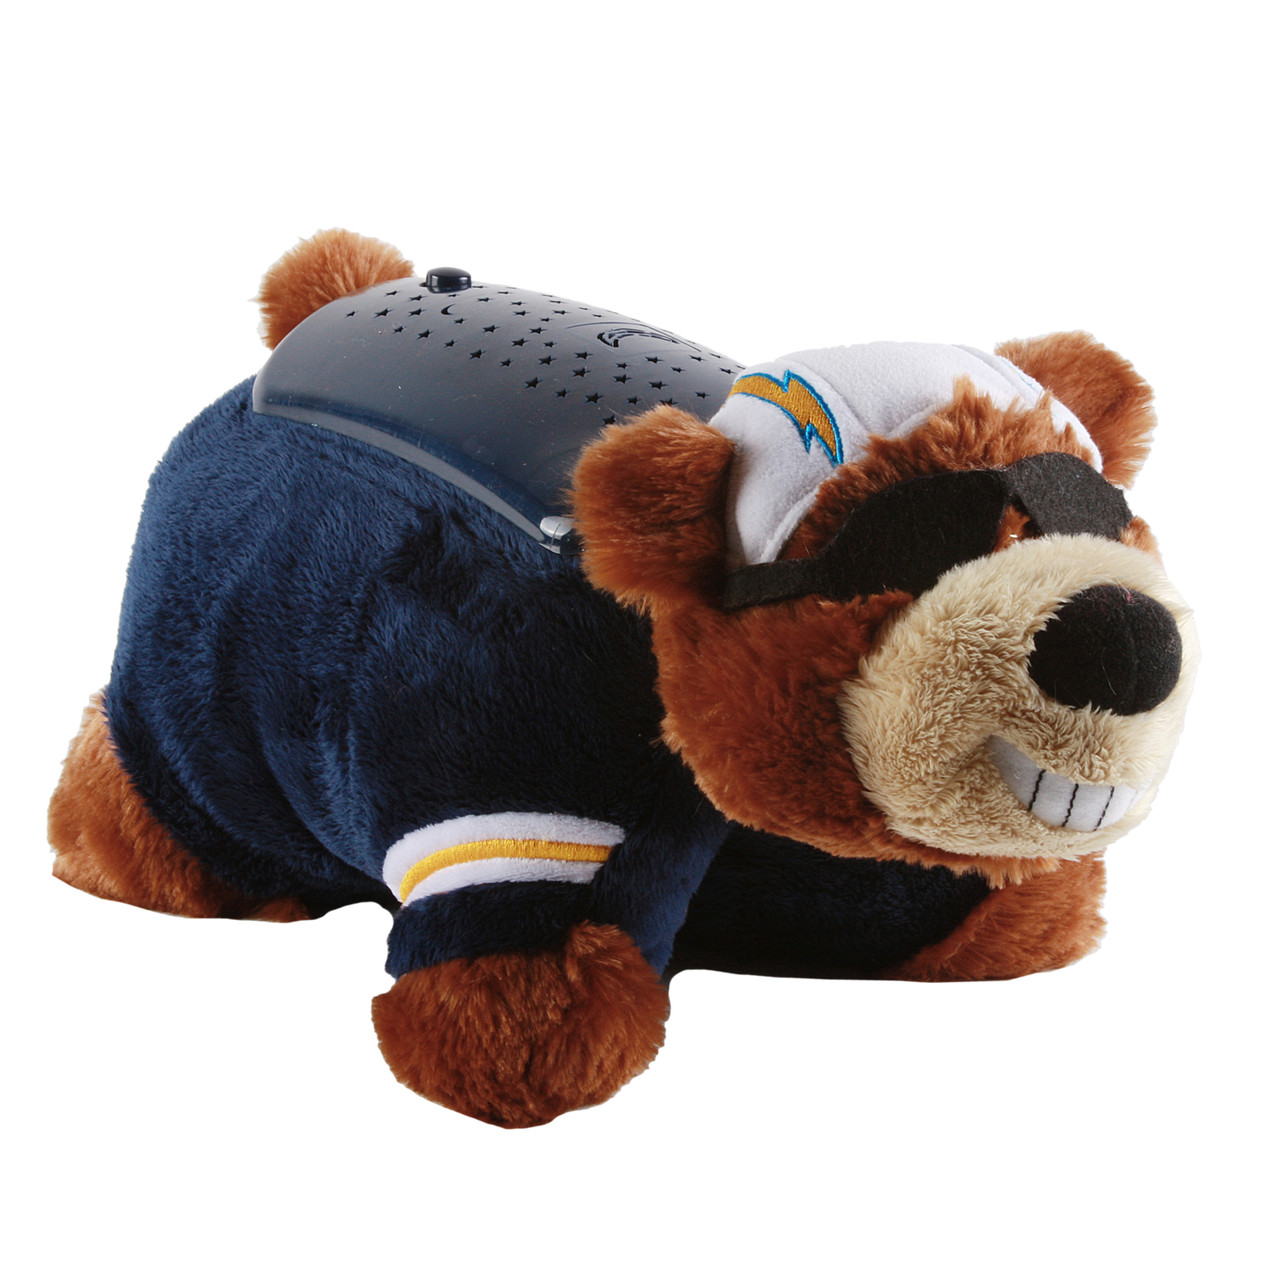 nfl dream lites pillow pets sd chargers